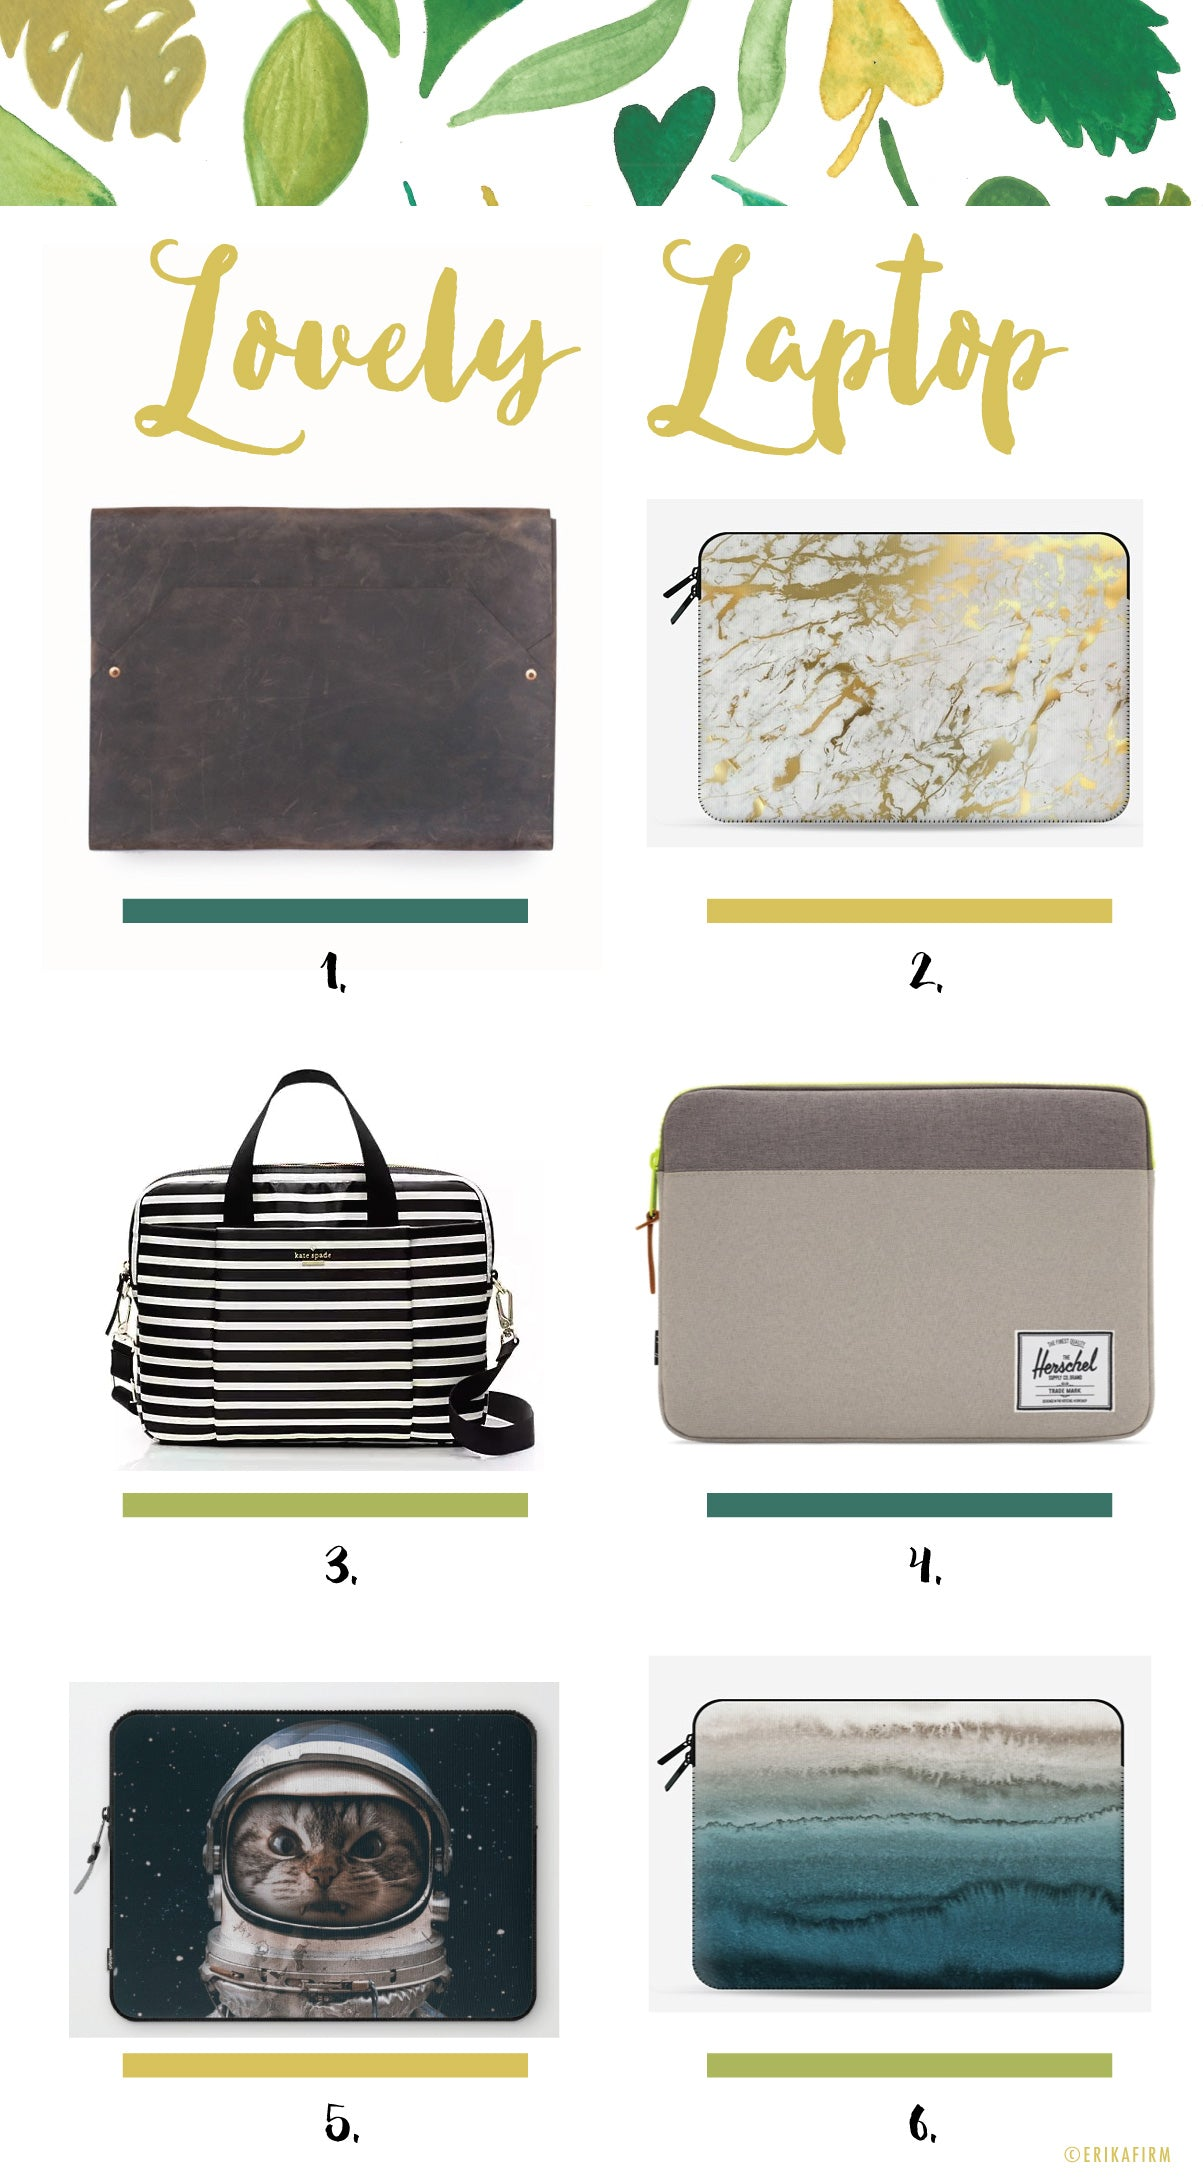 lovely laptop sleeves and laptop cases